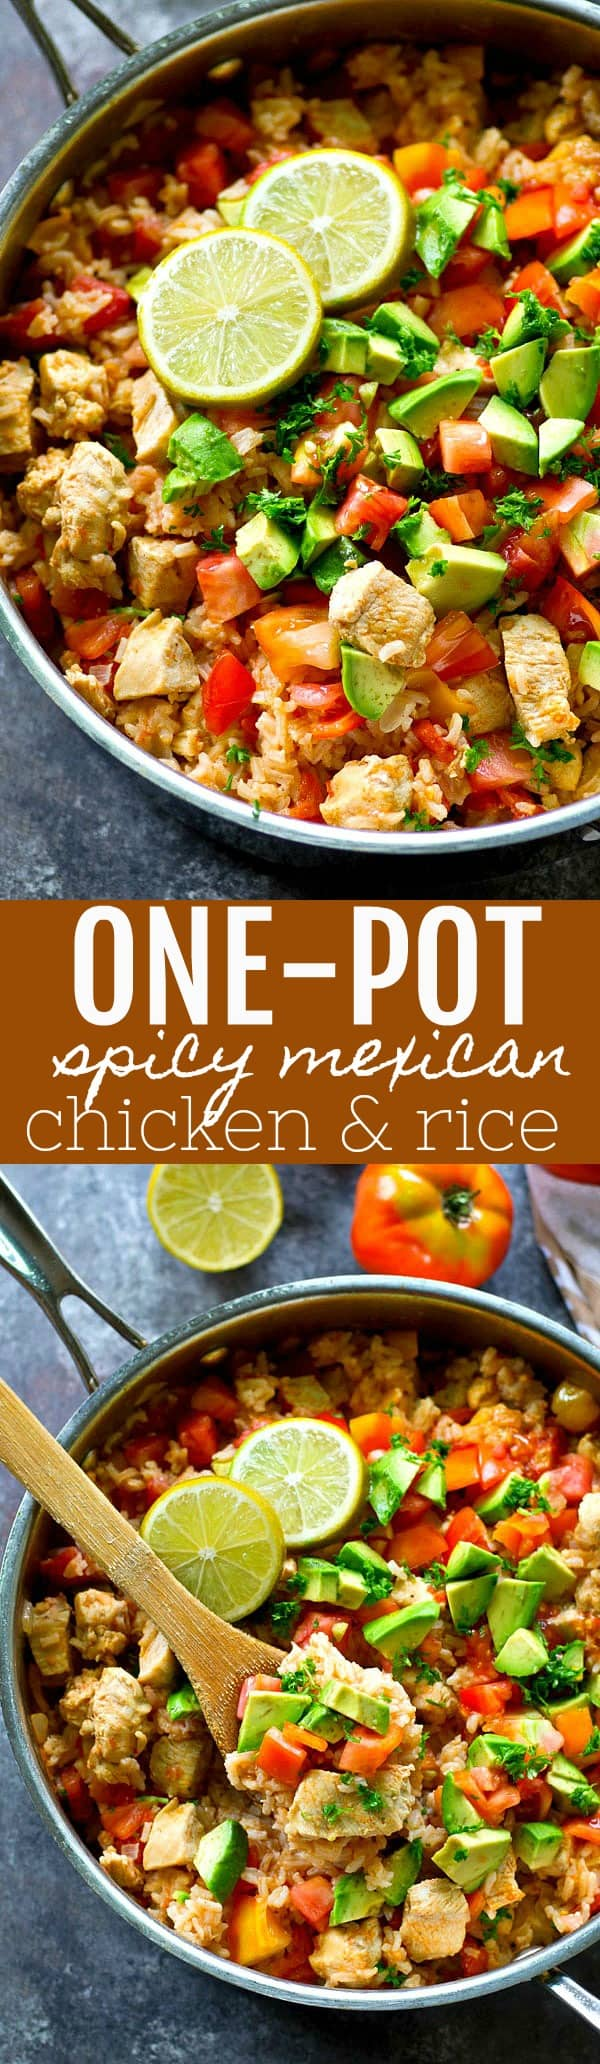 Grab one pot and a handful of ingredients and you've got everything you need to make this 'kickin, flavorful Mexican chicken and rice skillet! The easiest weeknight dinner ever.